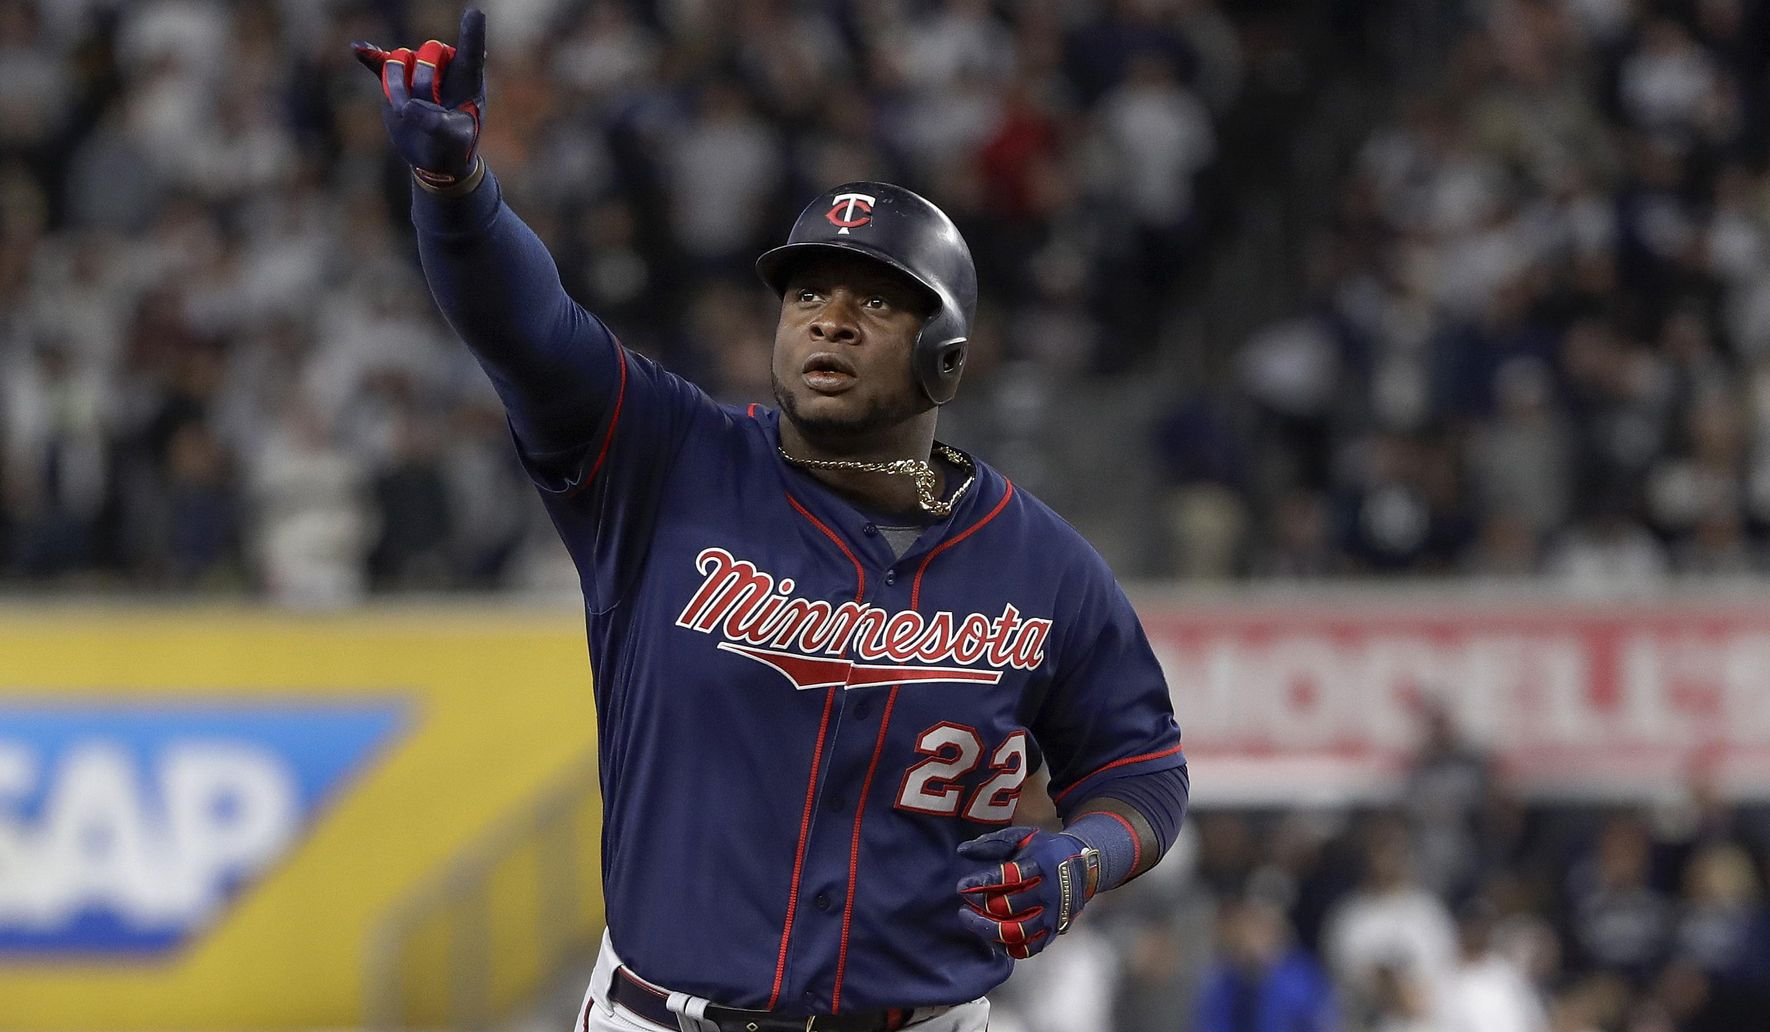 Twins_spring_preview_baseball_52104_c0-134-3106-1944_s1770x1032